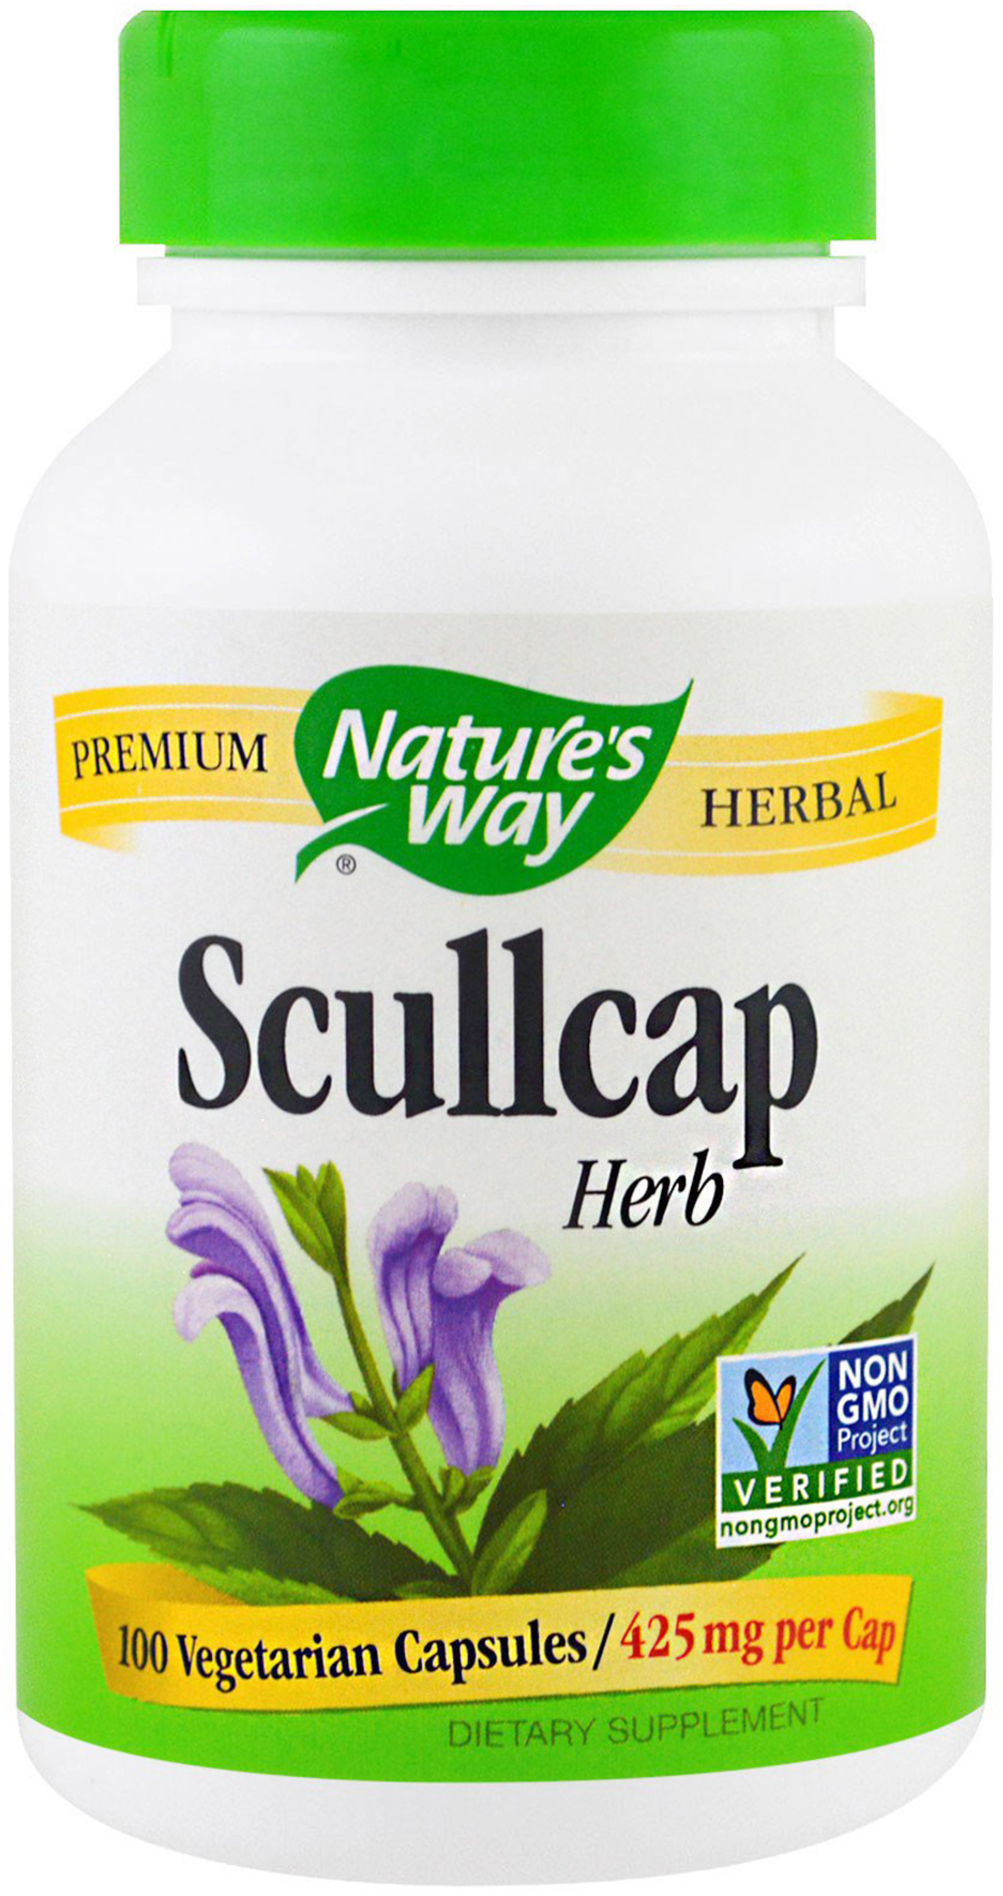 Scullcap Scullcap new picture